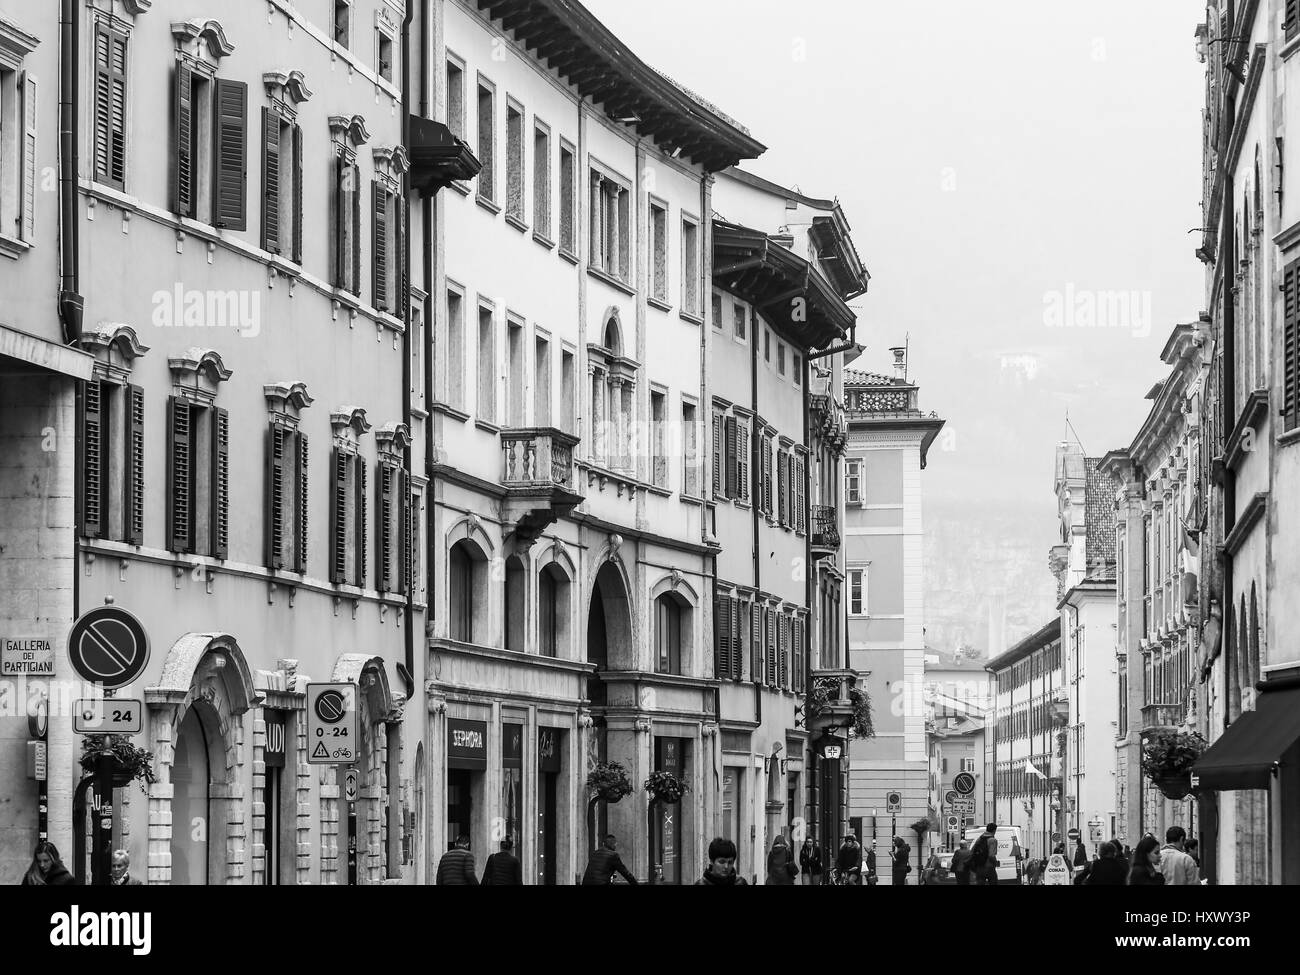 Trento, Italy - March 21, 2017: People in a shopping street in the old town with houses with diverse facades, cafes - Stock Image